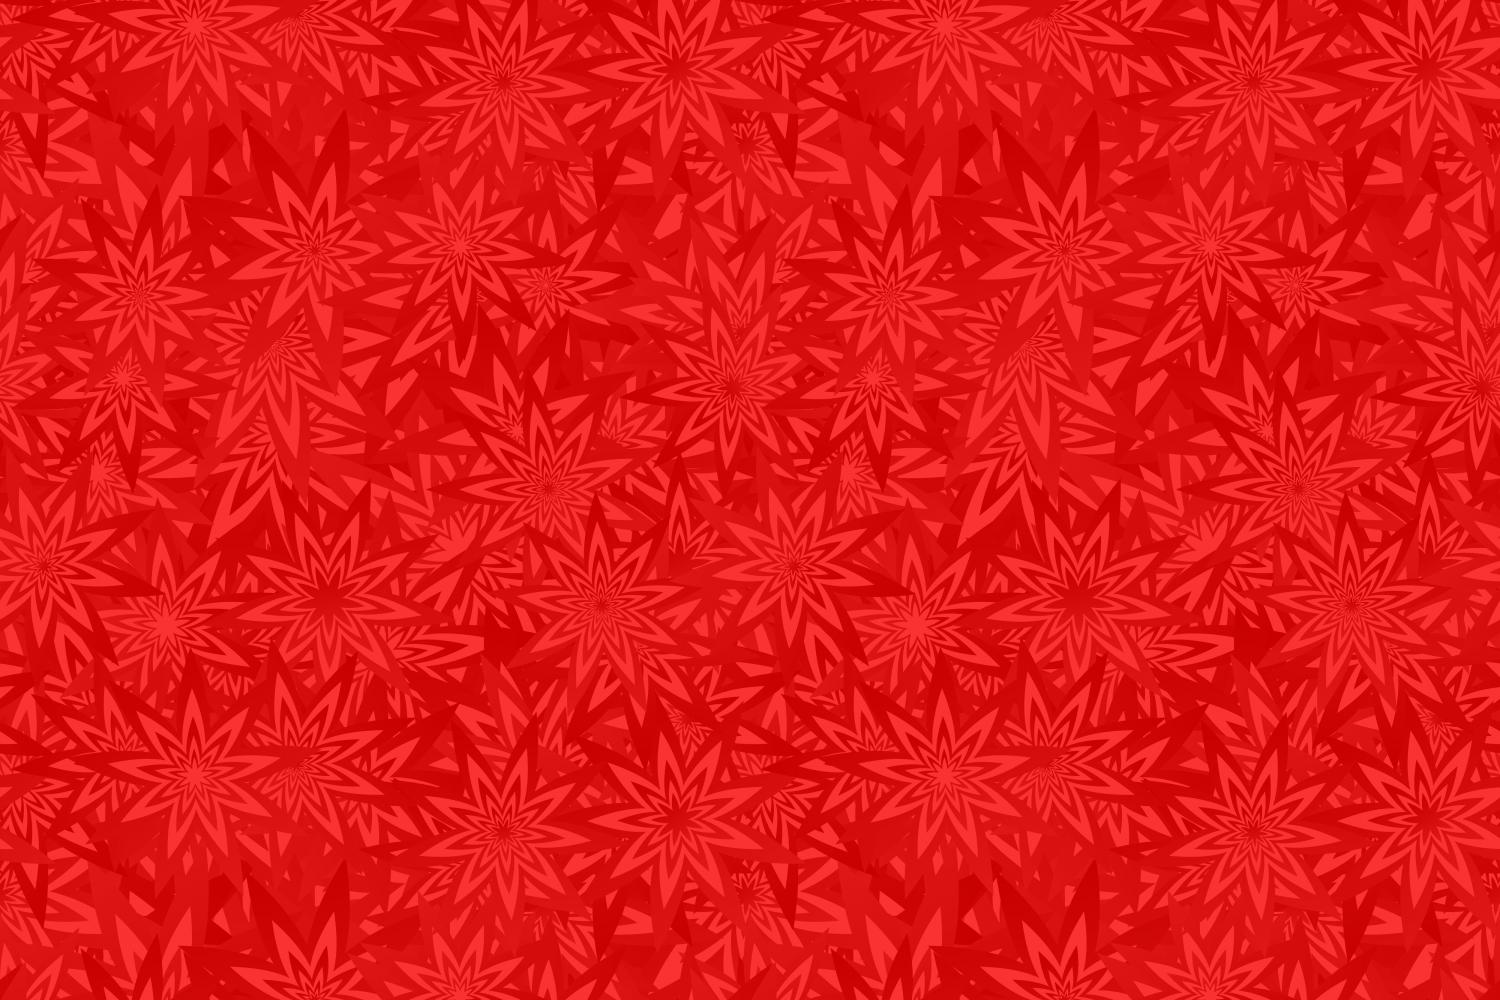 Download Free Red Seamless Floral Geometrical Pattern Graphic By Davidzydd for Cricut Explore, Silhouette and other cutting machines.